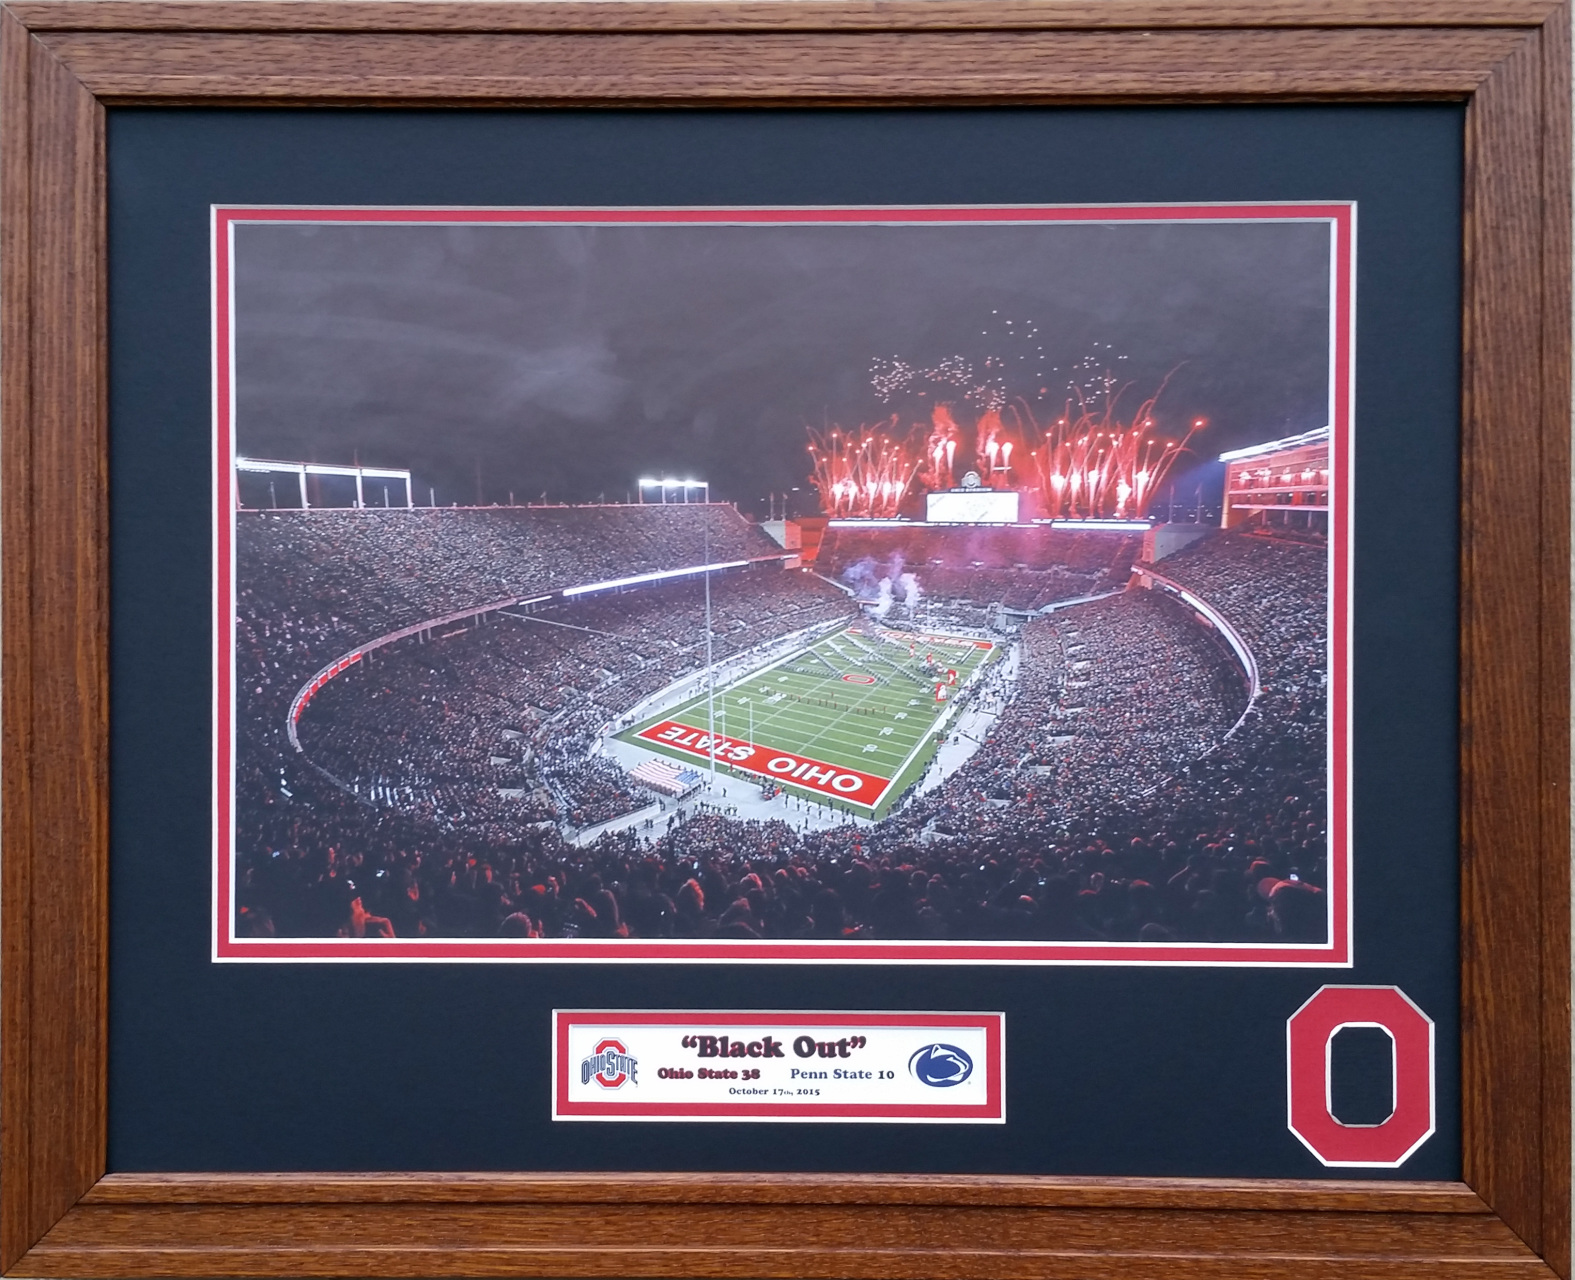 bainbridge x mats penn buckeyes inches state vs board game co mat picture ohio blackout framing this